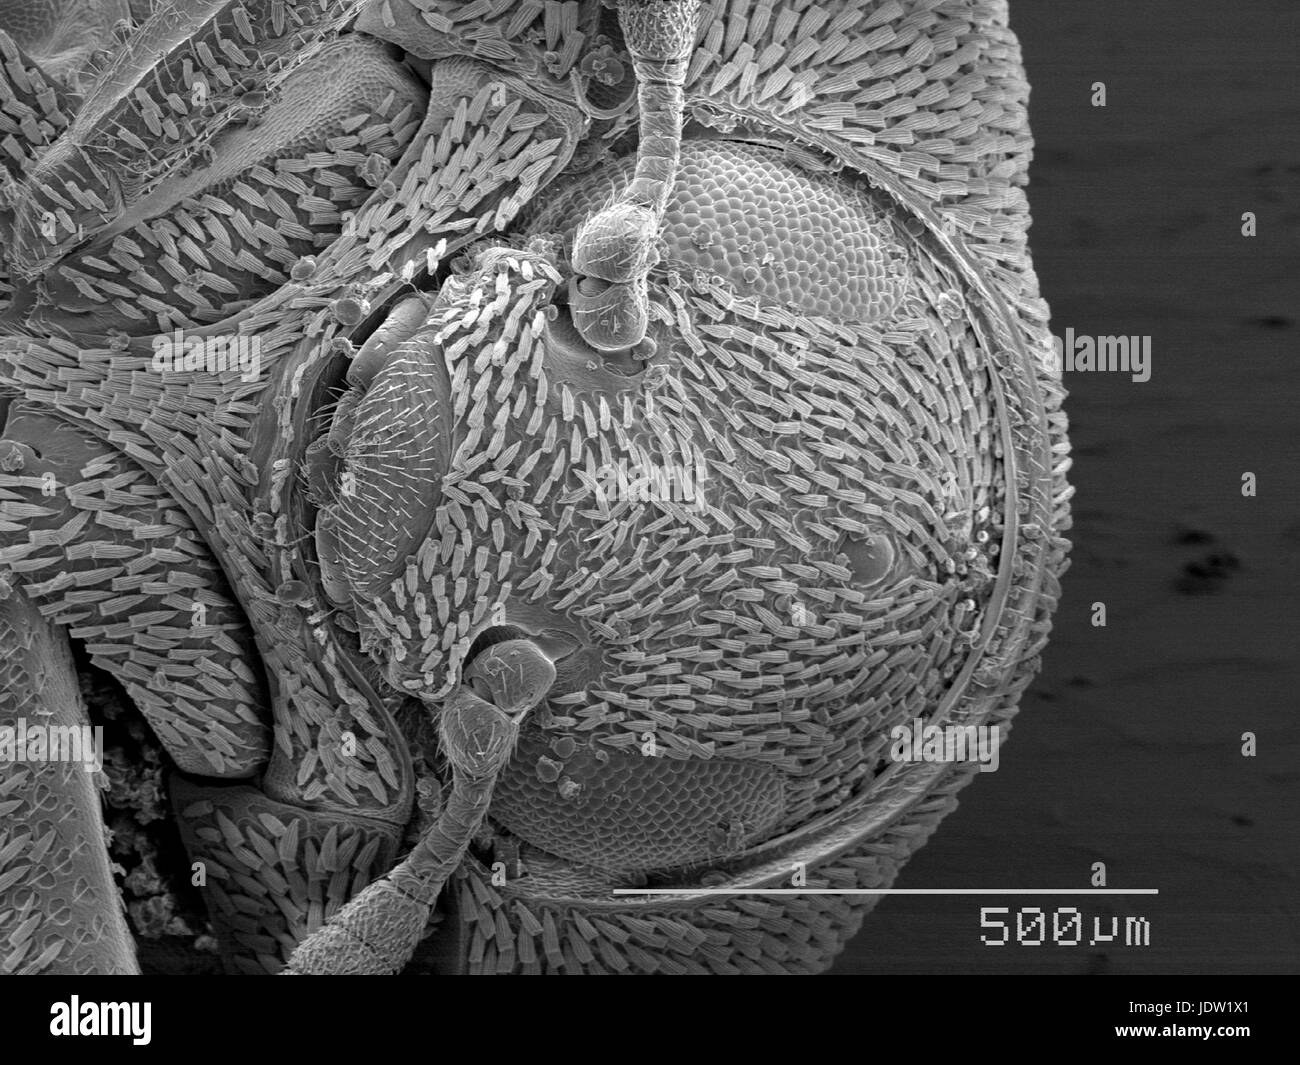 Magnified view of scaly beetle head - Stock Image